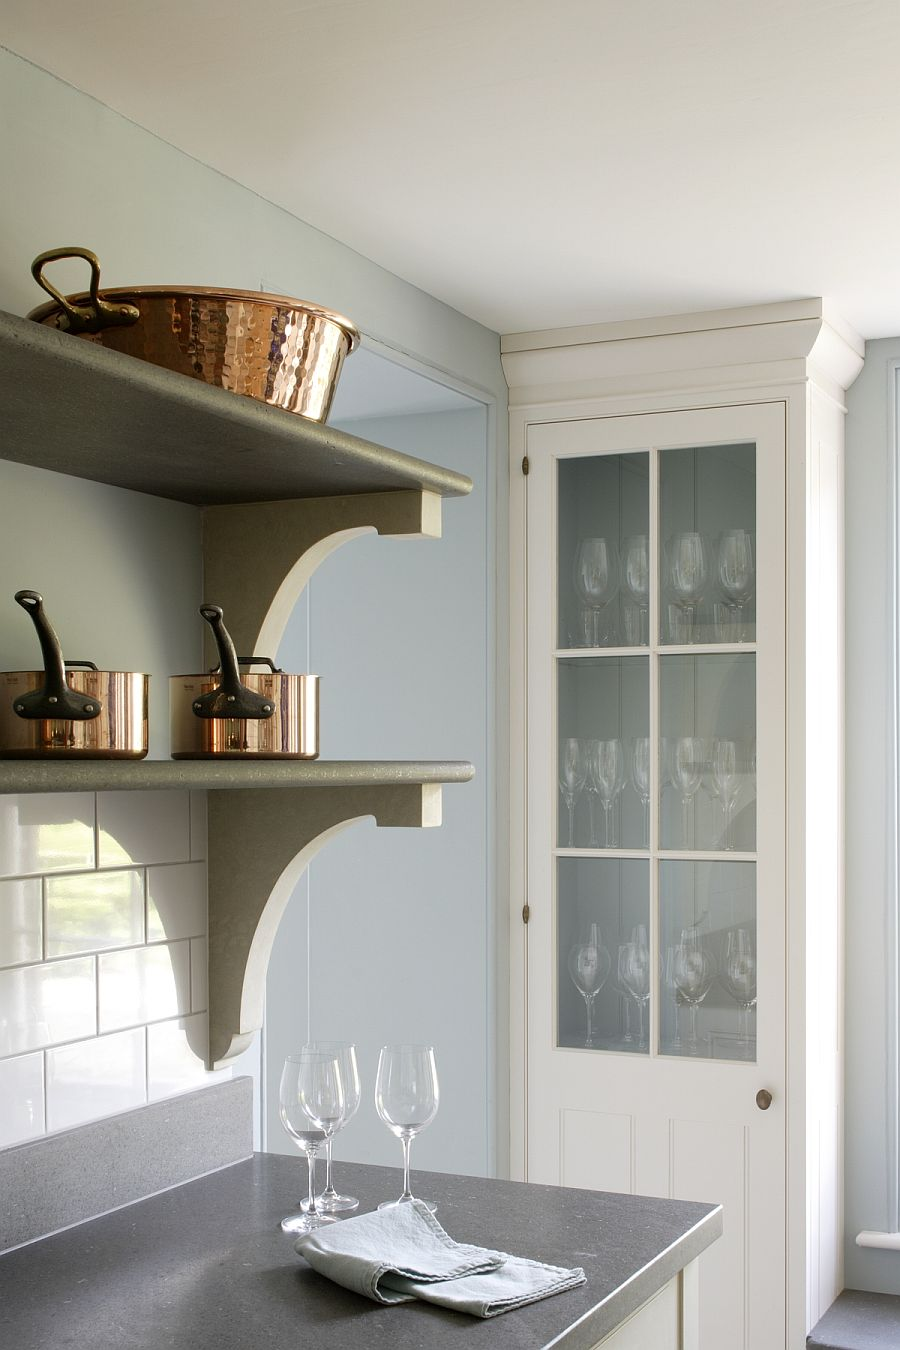 Italian Black Basalt stone used to craft the cool shelves in the kitchen